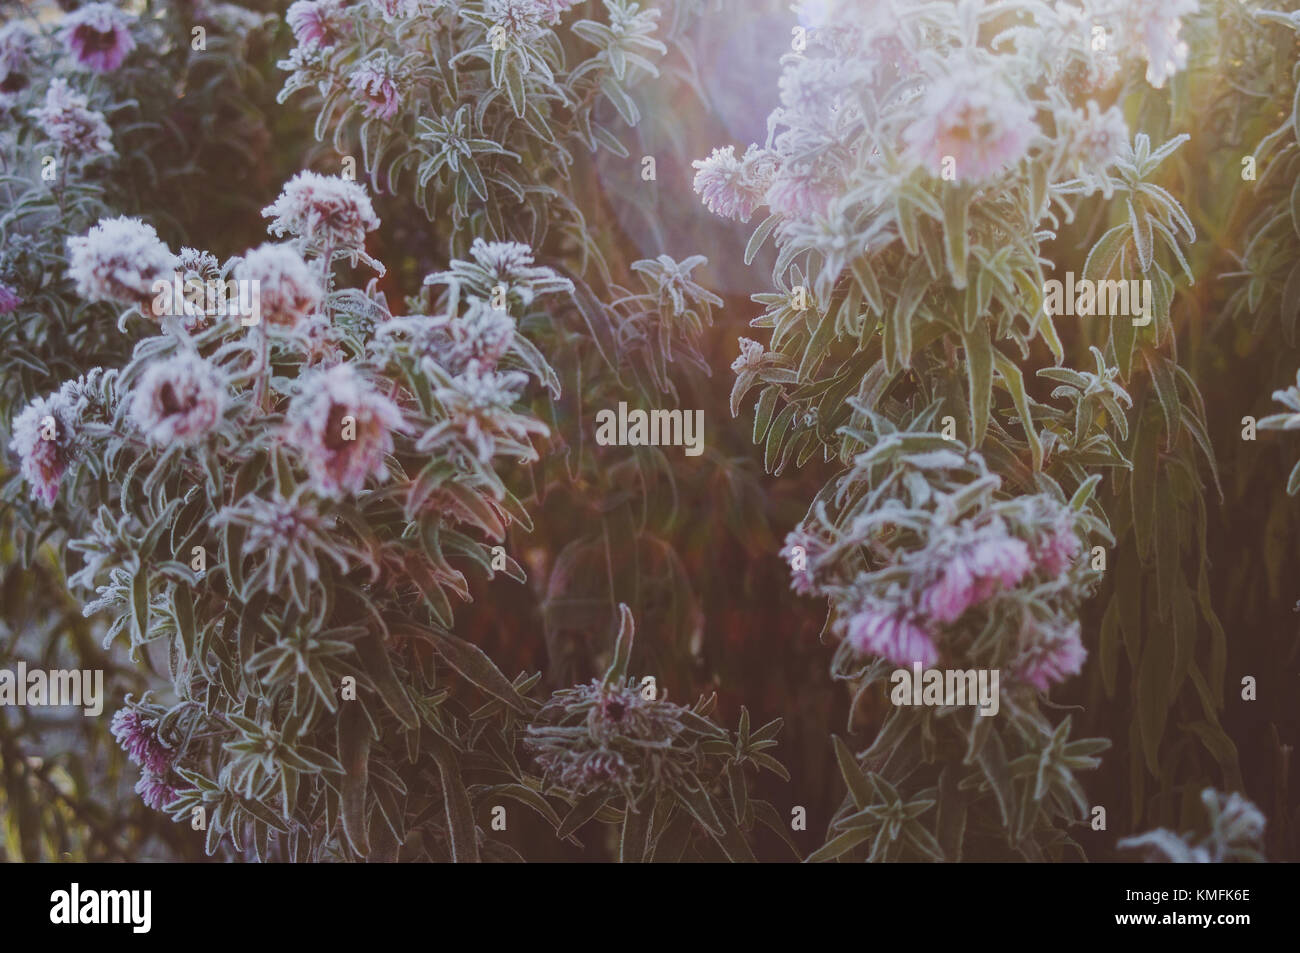 Morning sun rays in aster bouquet. - Stock Image